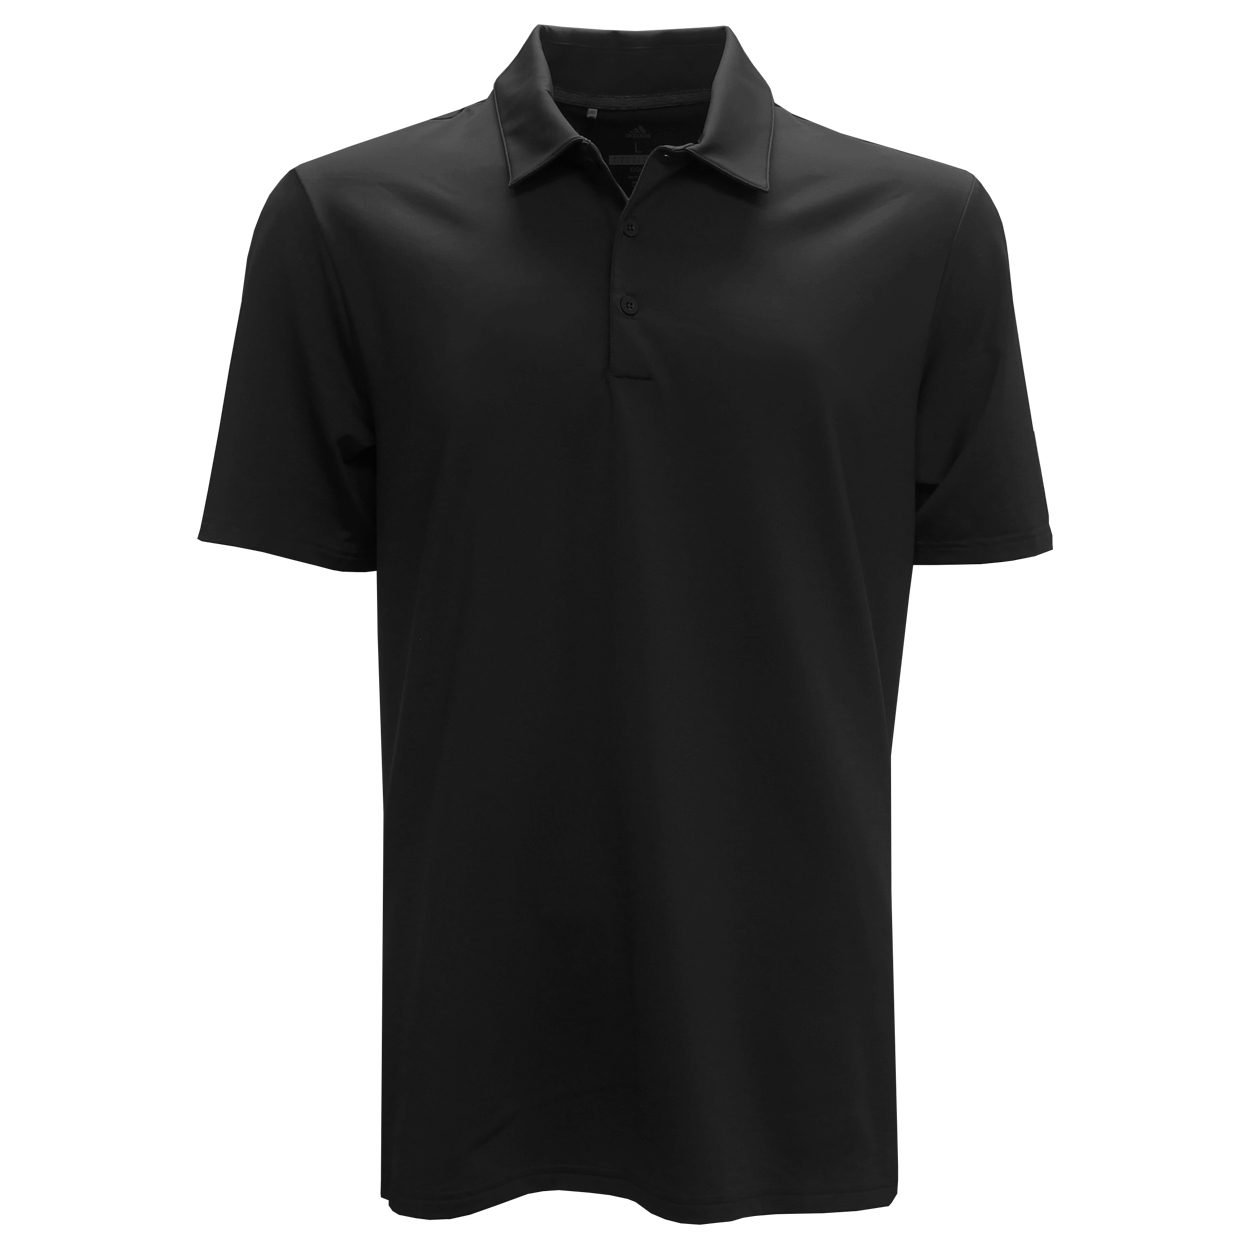 Adipolo 0006 blk front 0419